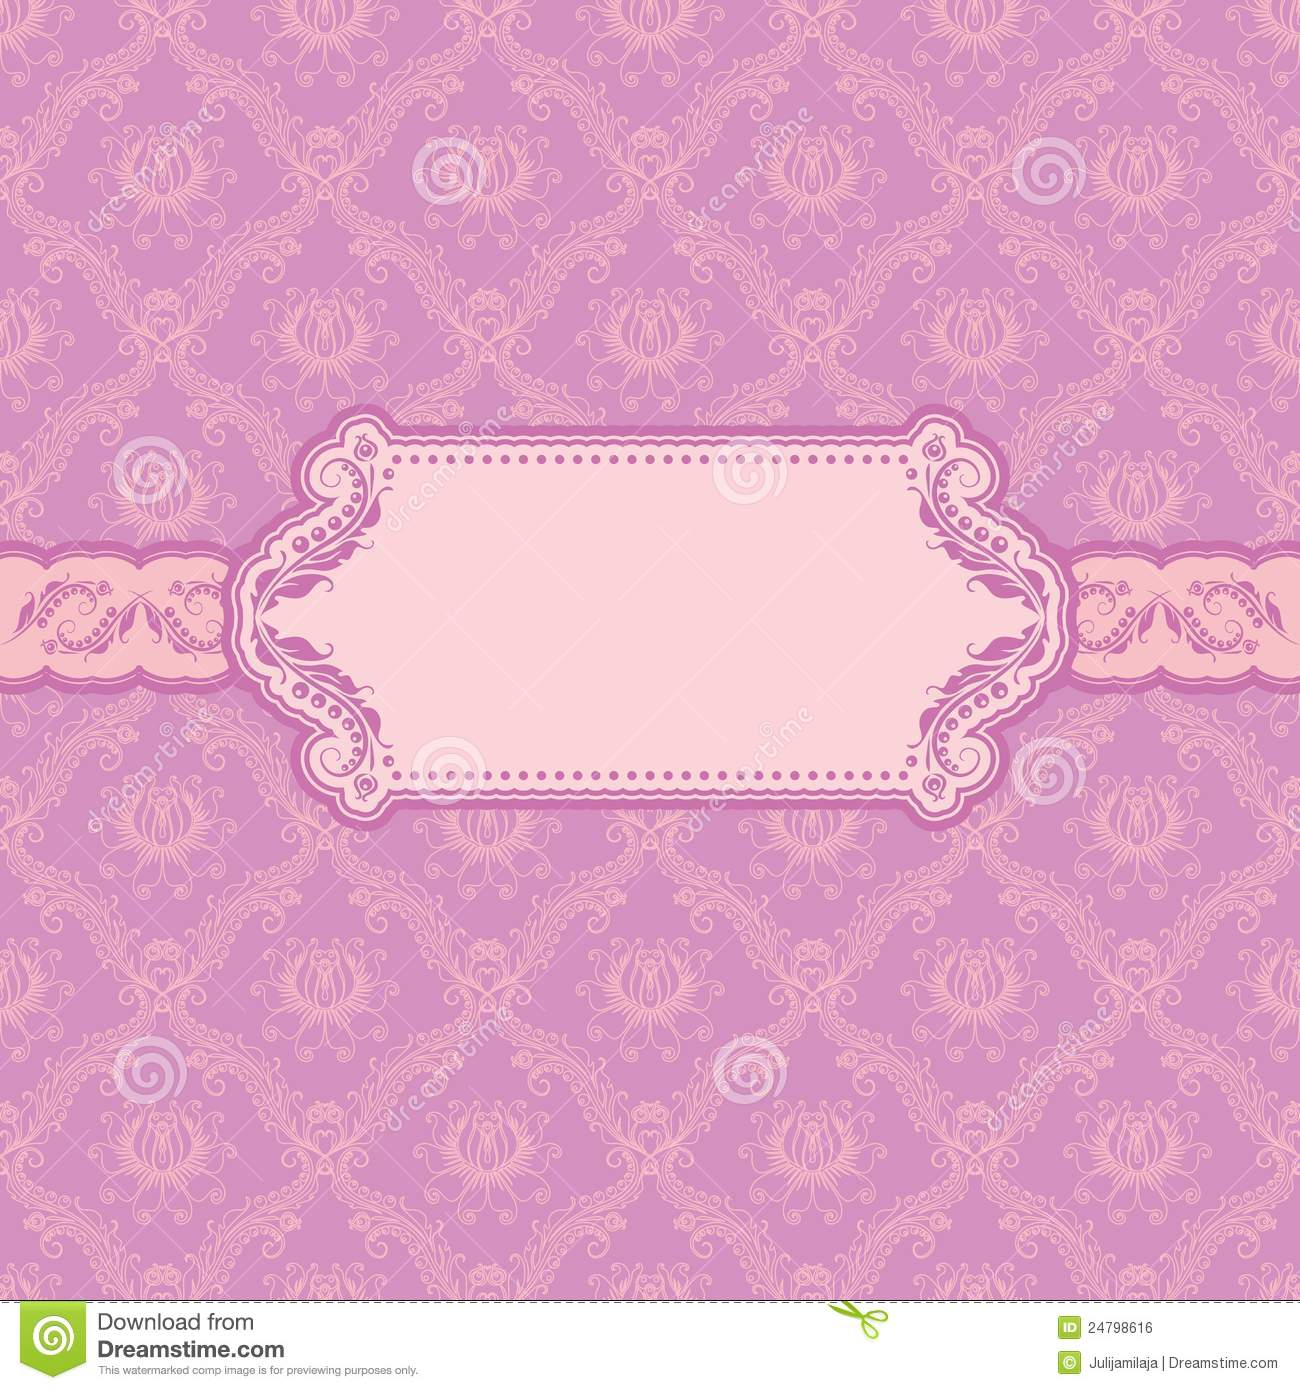 Template Greeting Card Royalty Free Stock Image: Template Frame Design For Greeting Card . Royalty Free